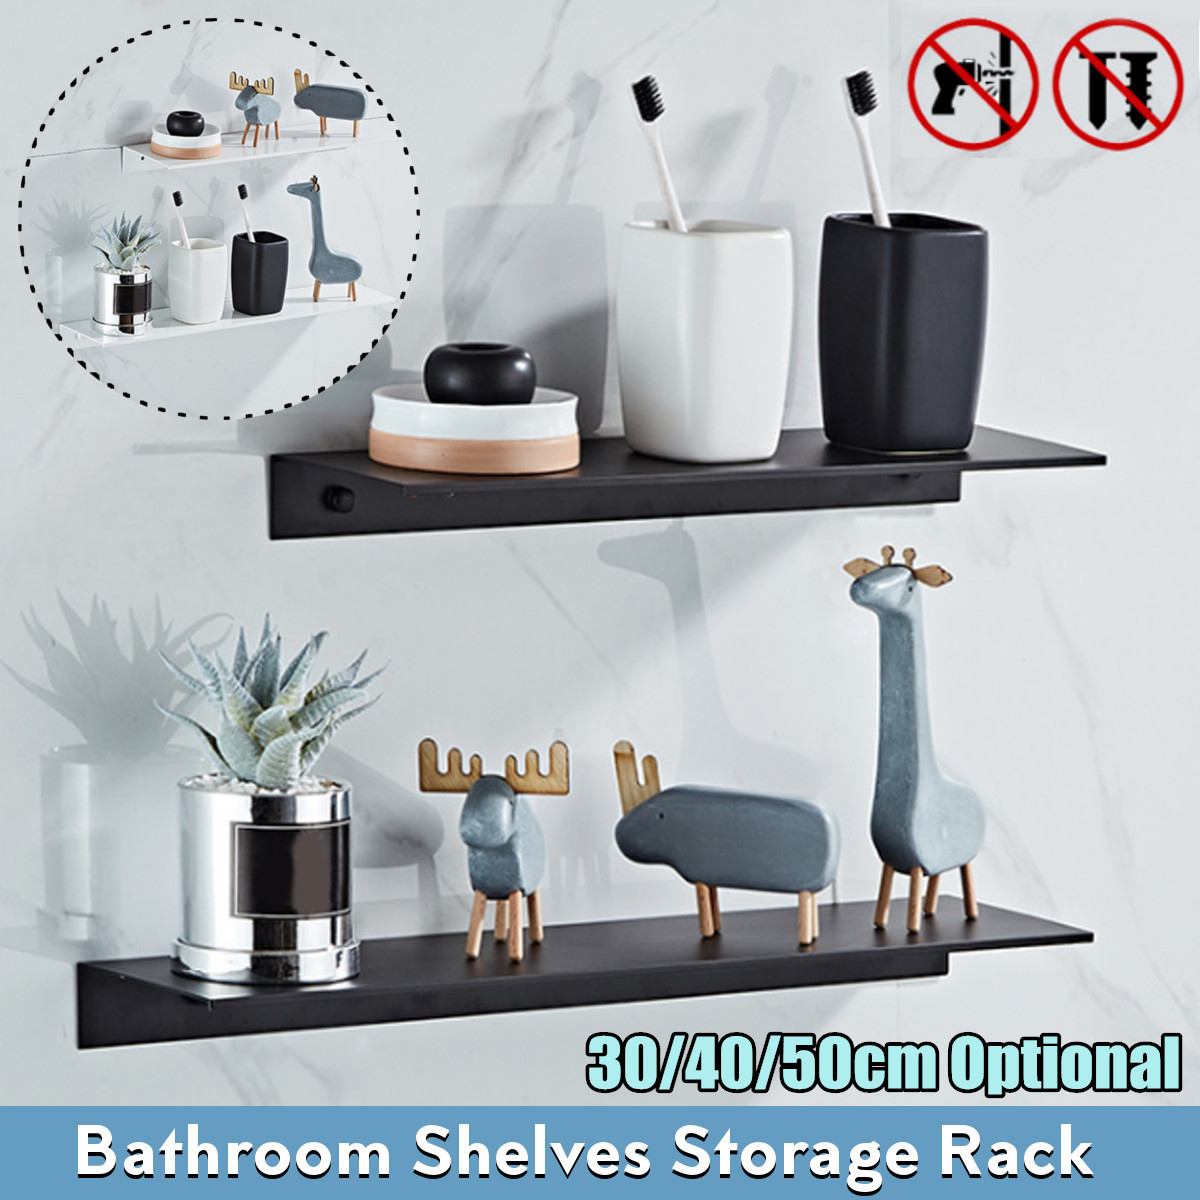 Space Aluminum Black Bathroom Shelves Kitchen Wall Shelf Shampoo Cups Shower Gel Storage Holder Bathroom Accessories image